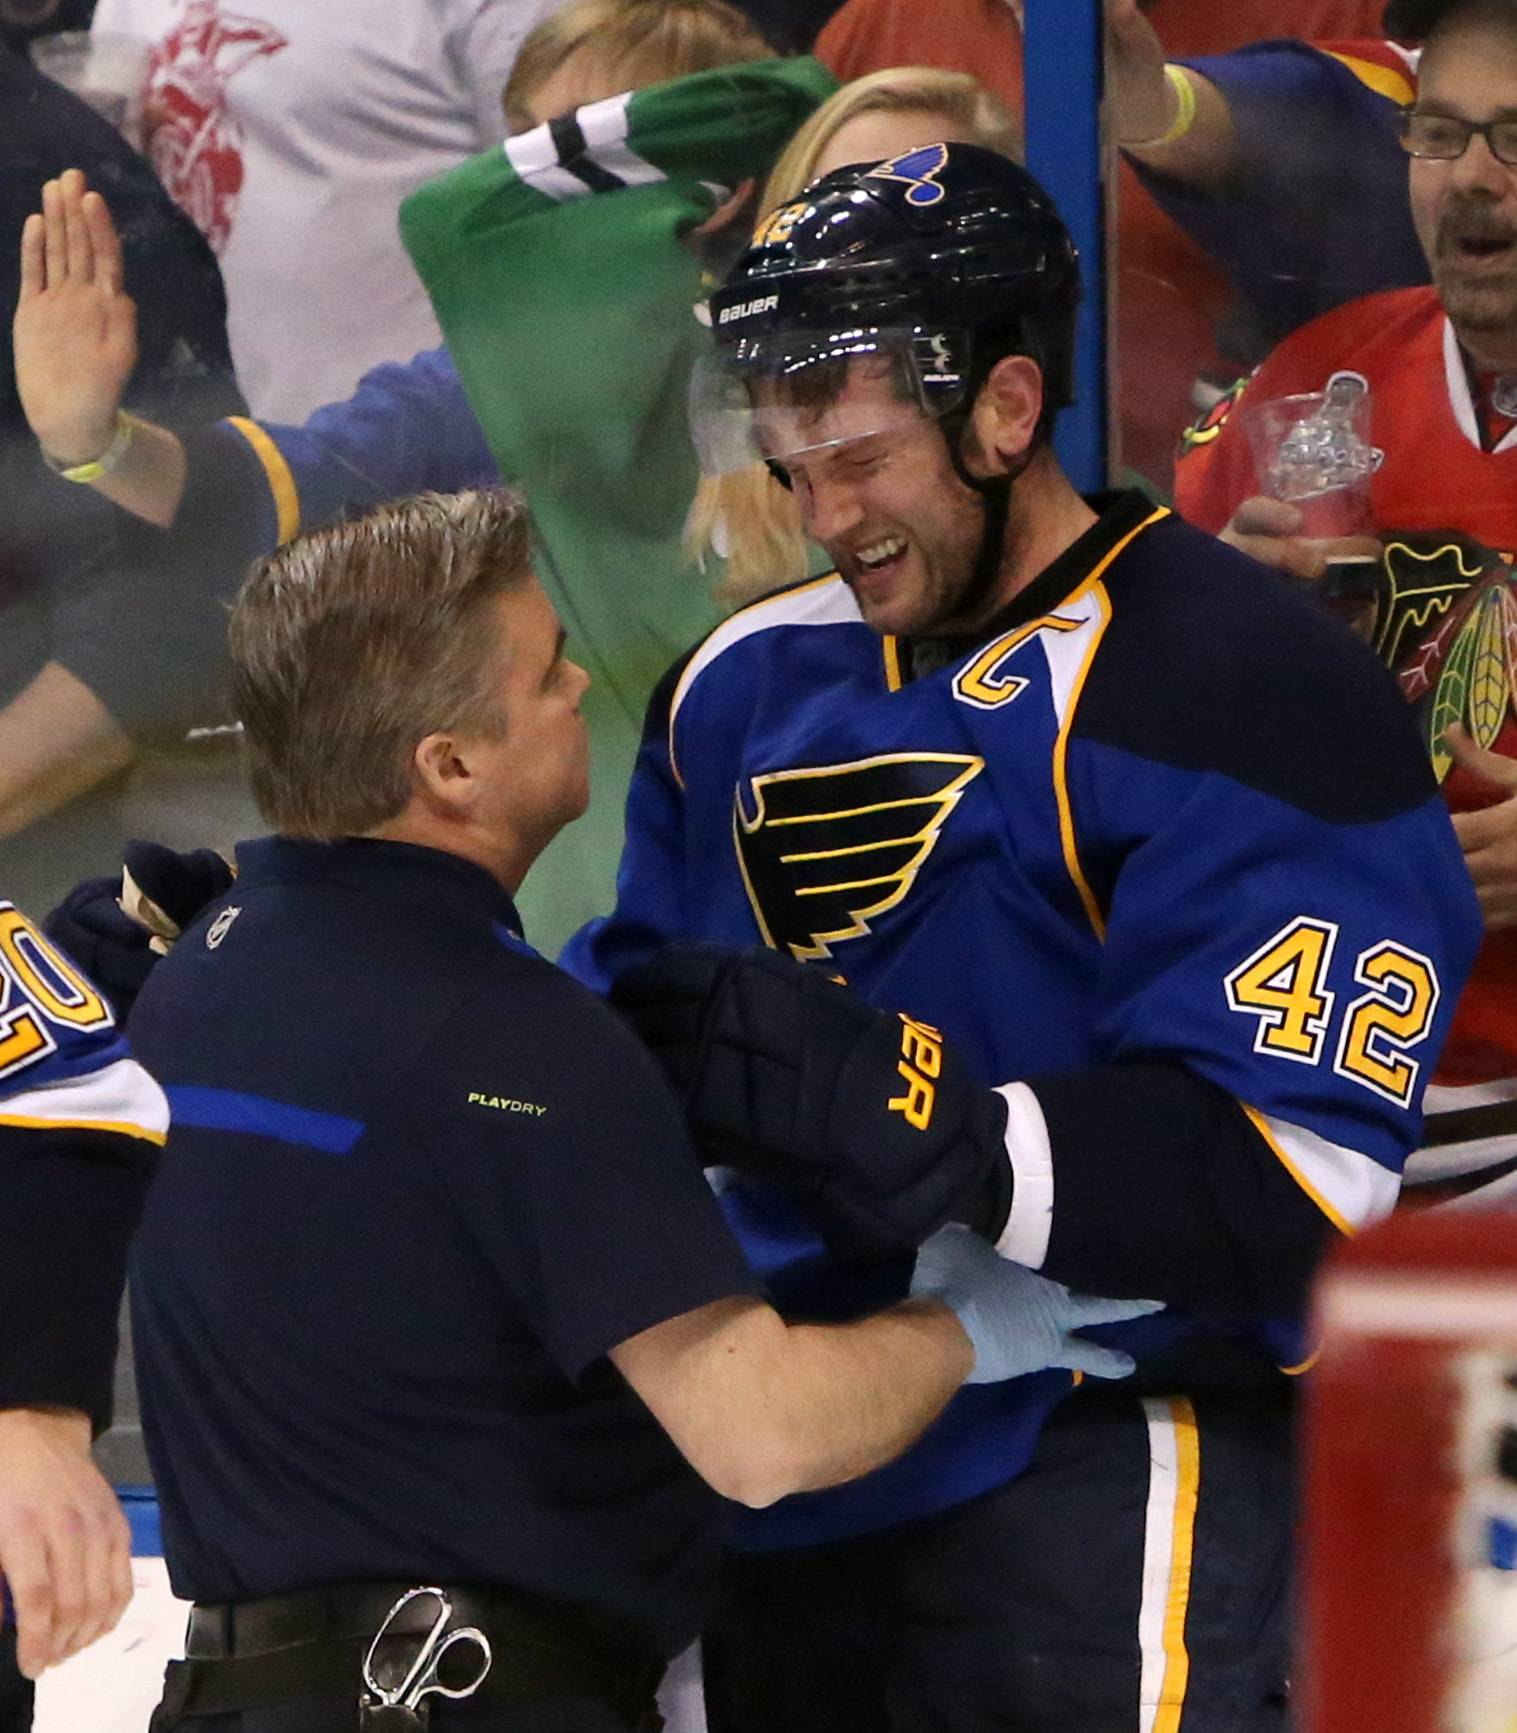 Blues center David Backes is tended to by trainer Ray Barile after taking a hit from Blackhawks defenseman Brent Seabrook in the third period during Game 2. The hit turned out to be the turning point of the series, just not the way many experts expected it to be.